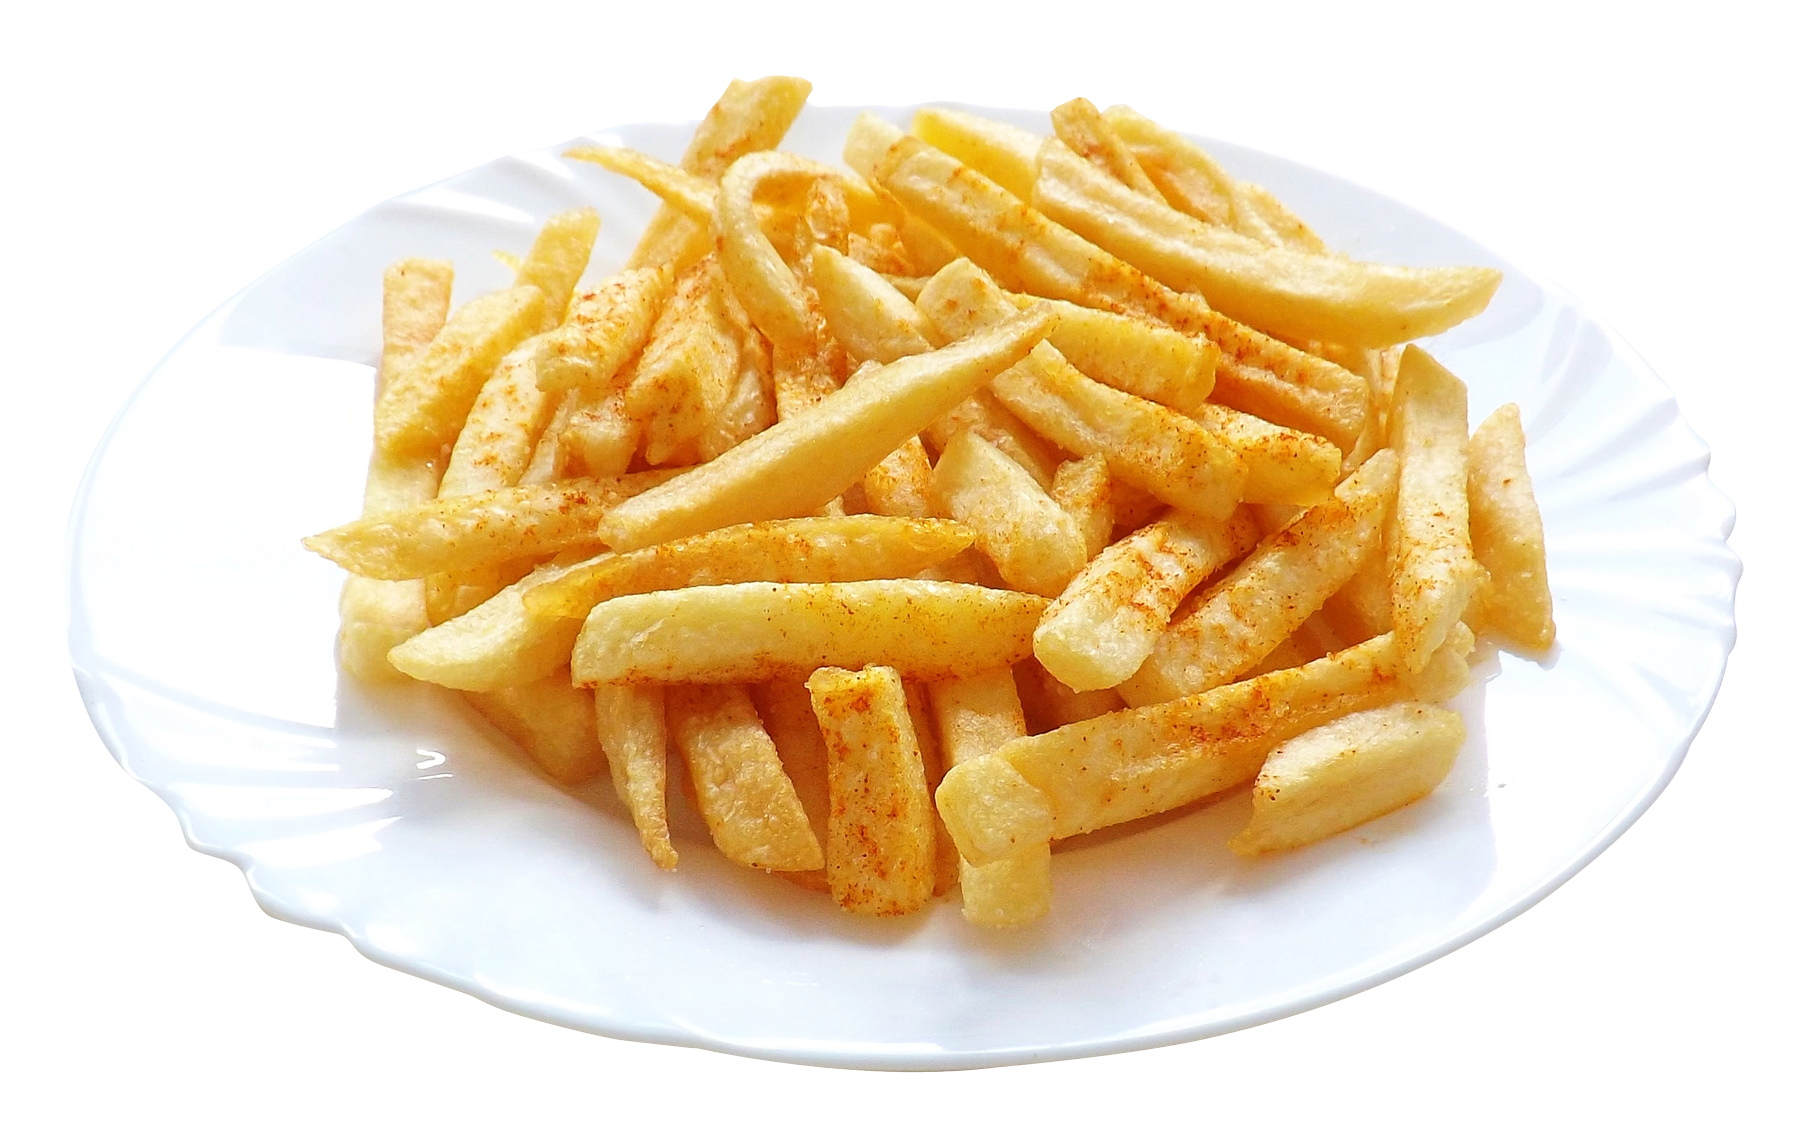 download french fries png image for free homemade french fries halogen oven recipes french fries recipe homemade french fries recipe homemade